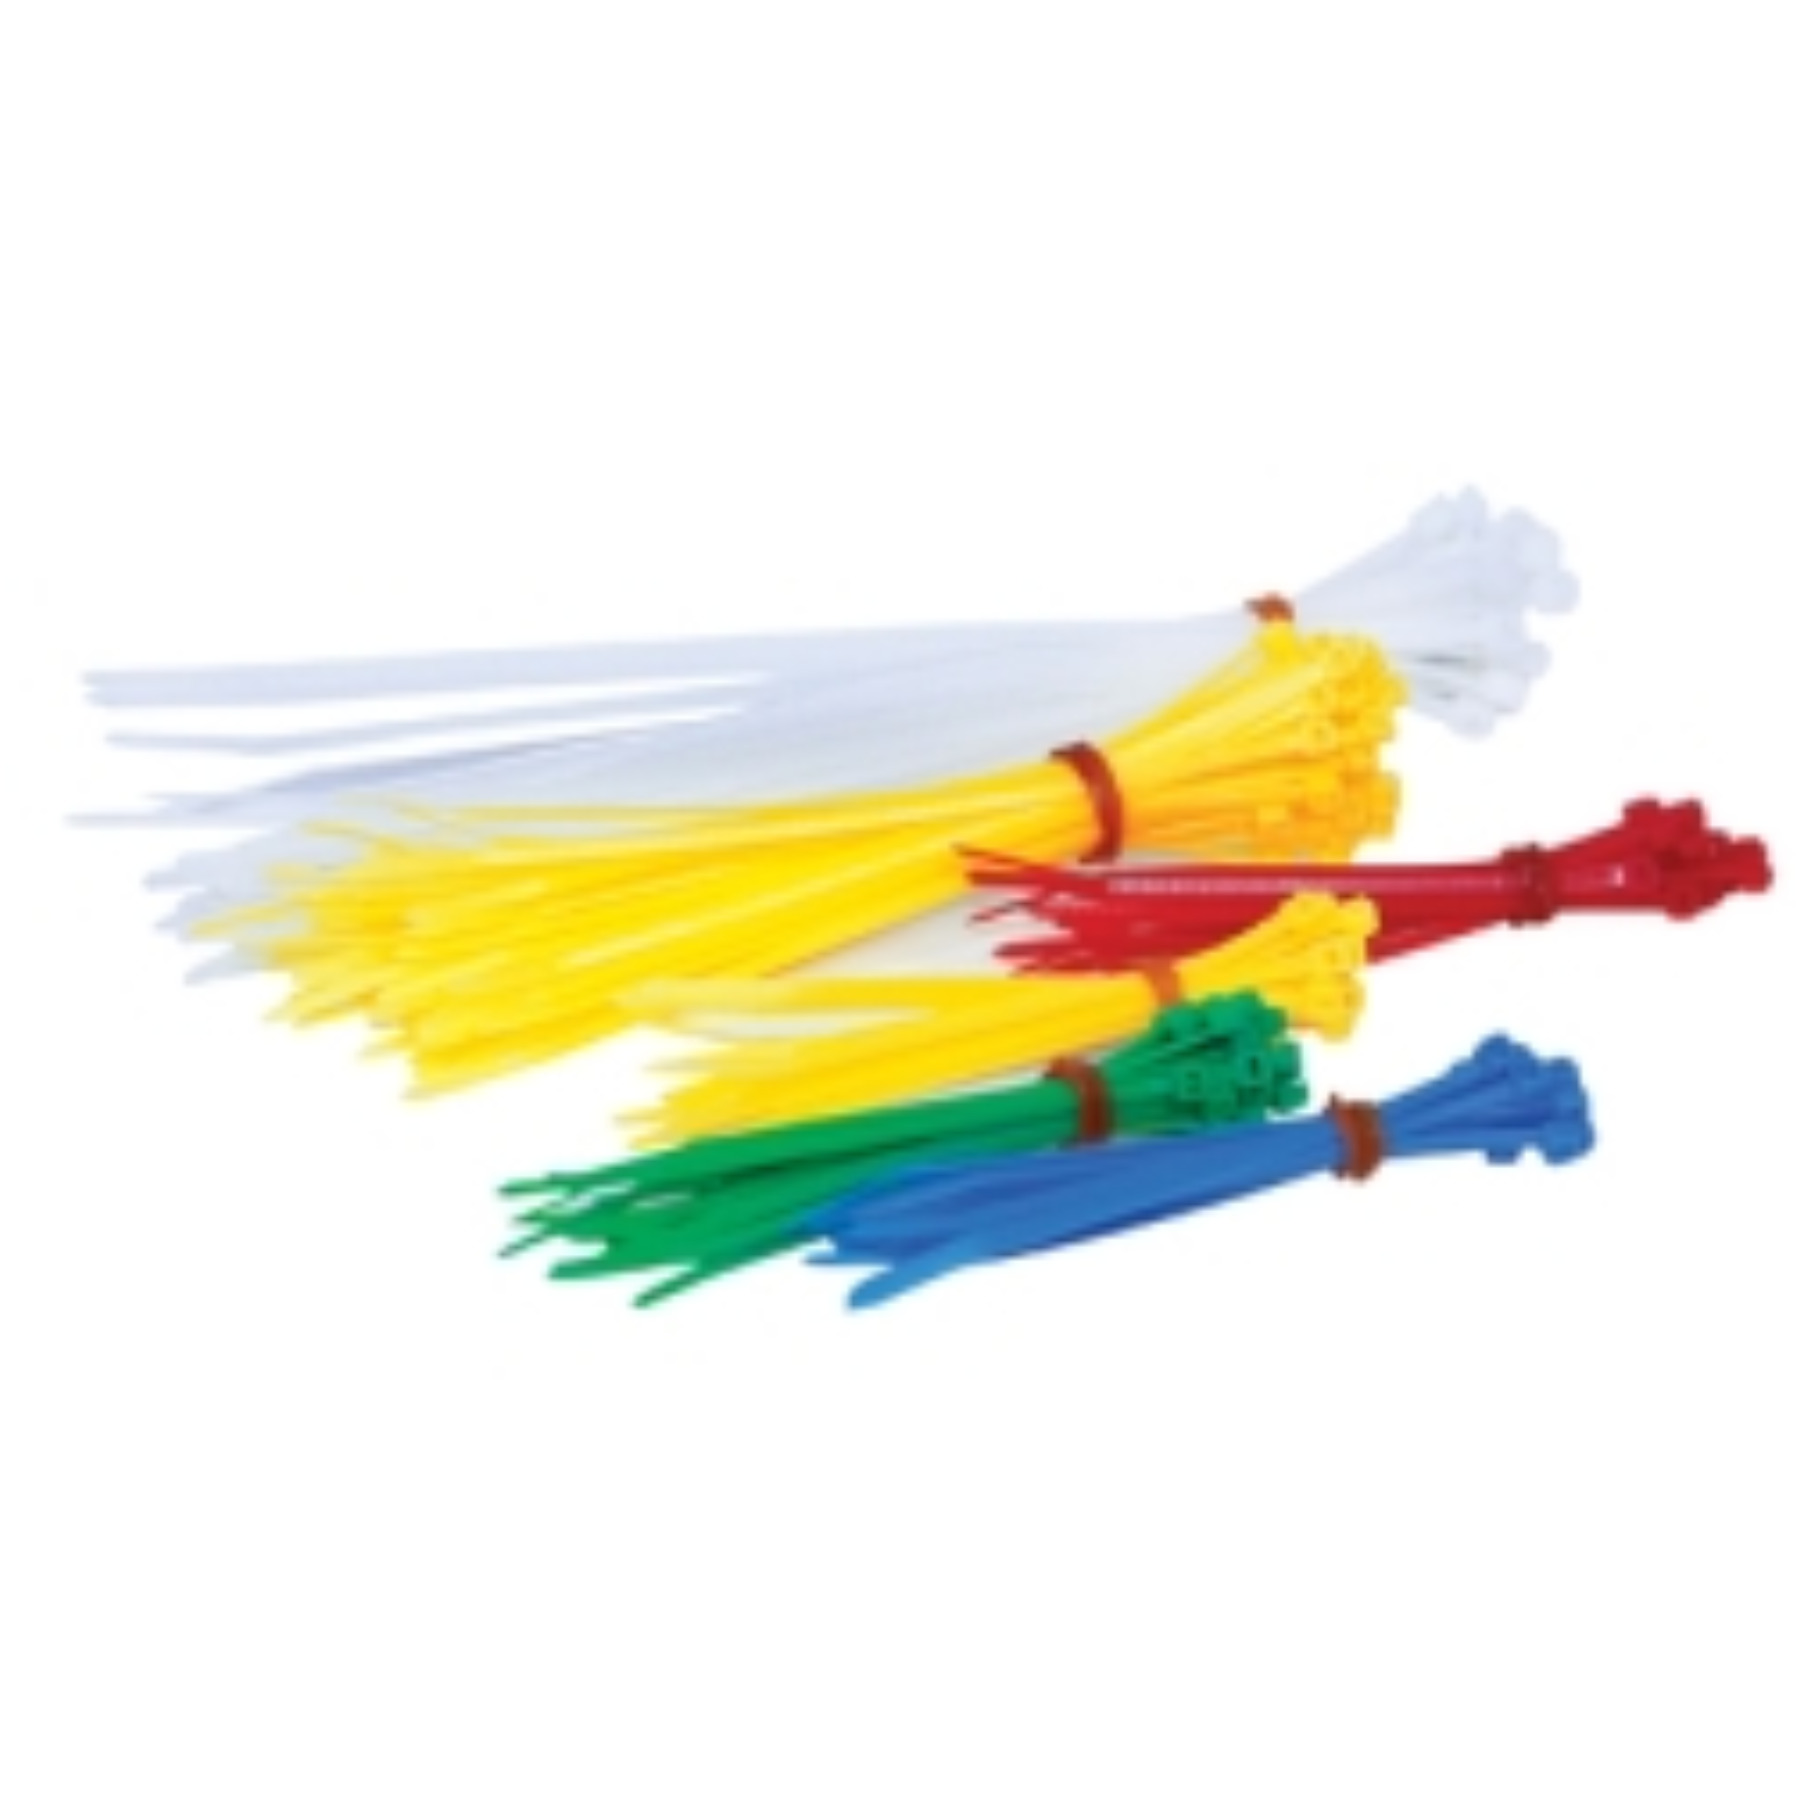 150 PC CABLE TIES